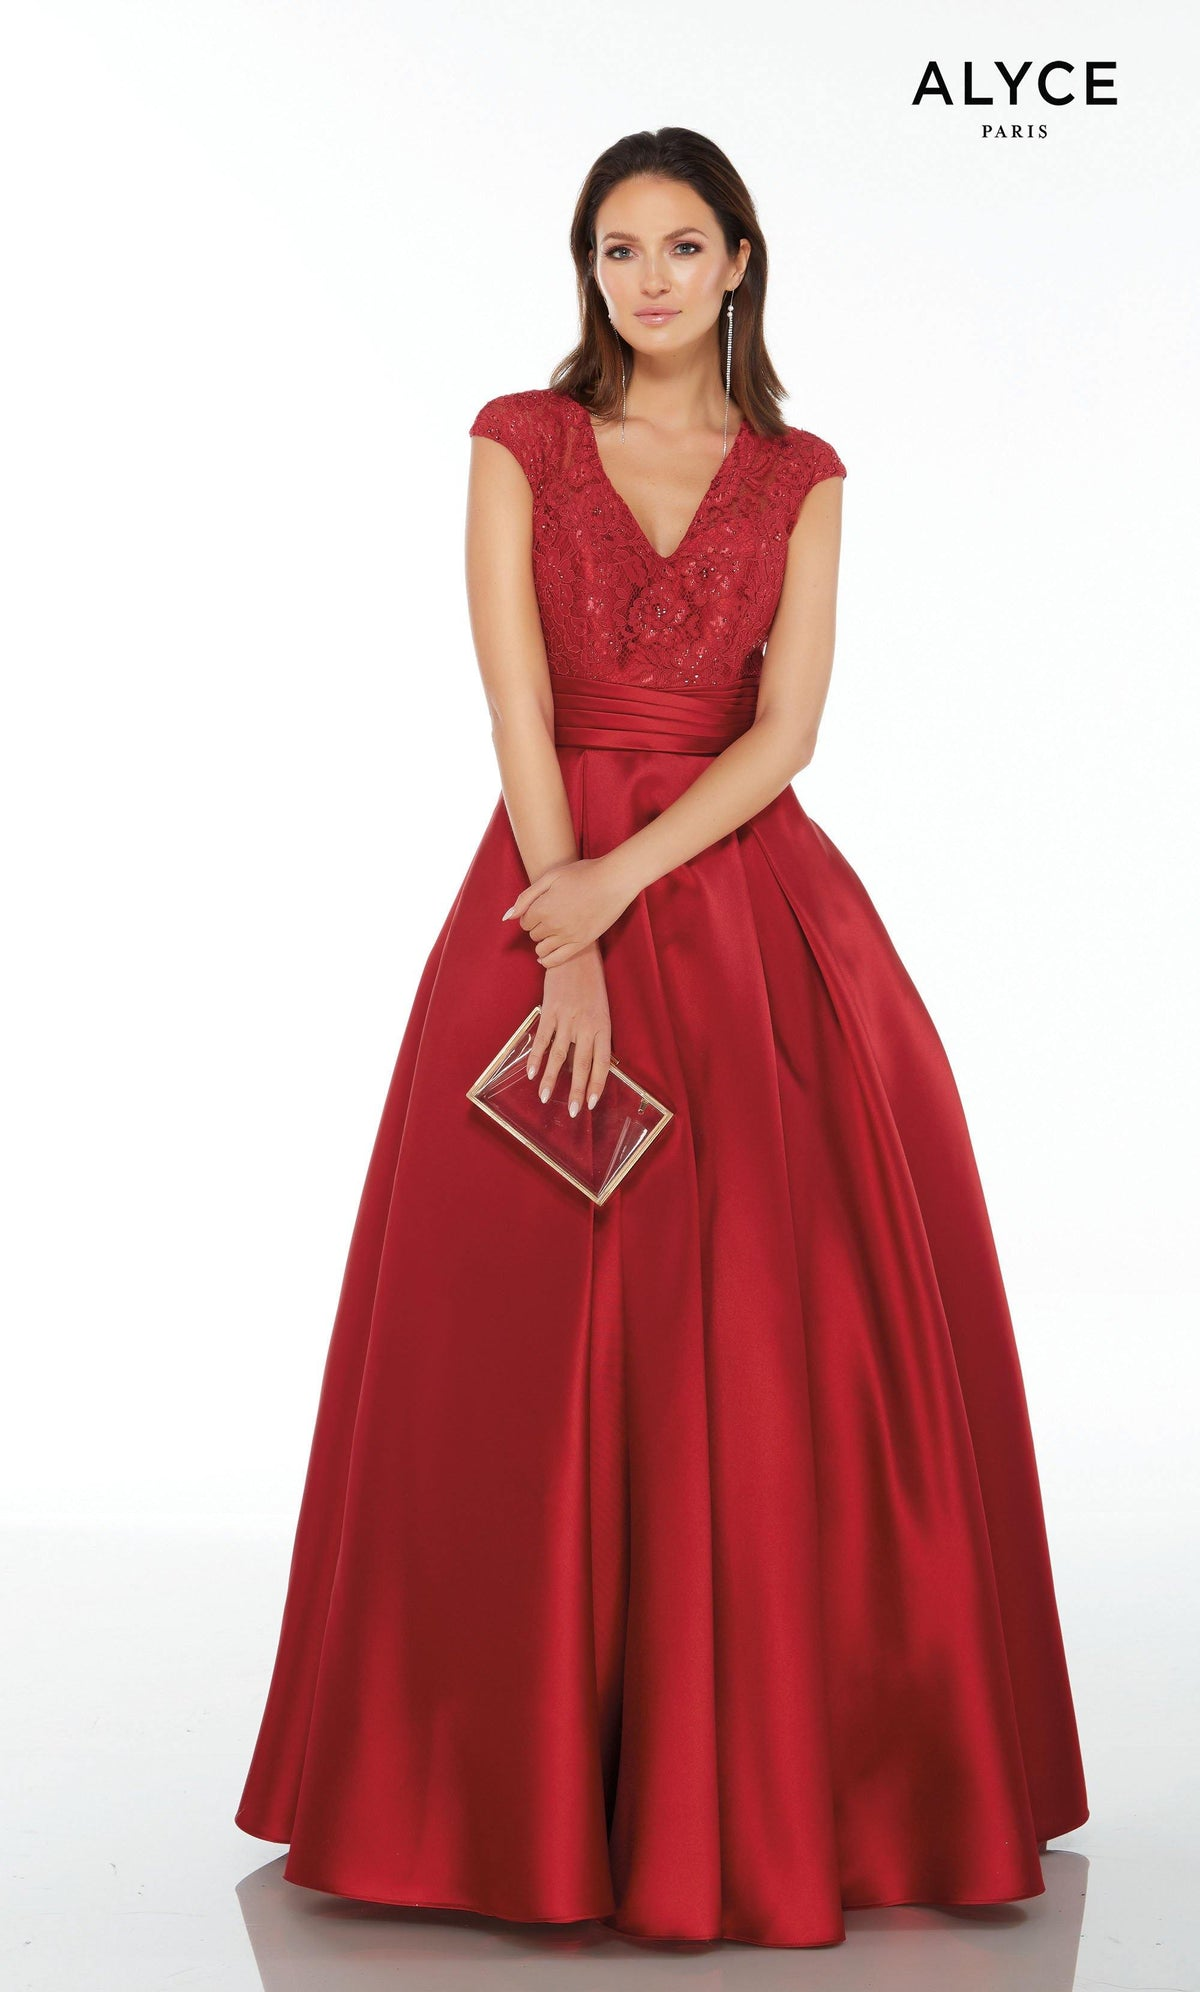 Red mikado formal ball gown with a V-neckline, lace bodice, and cap sleeves